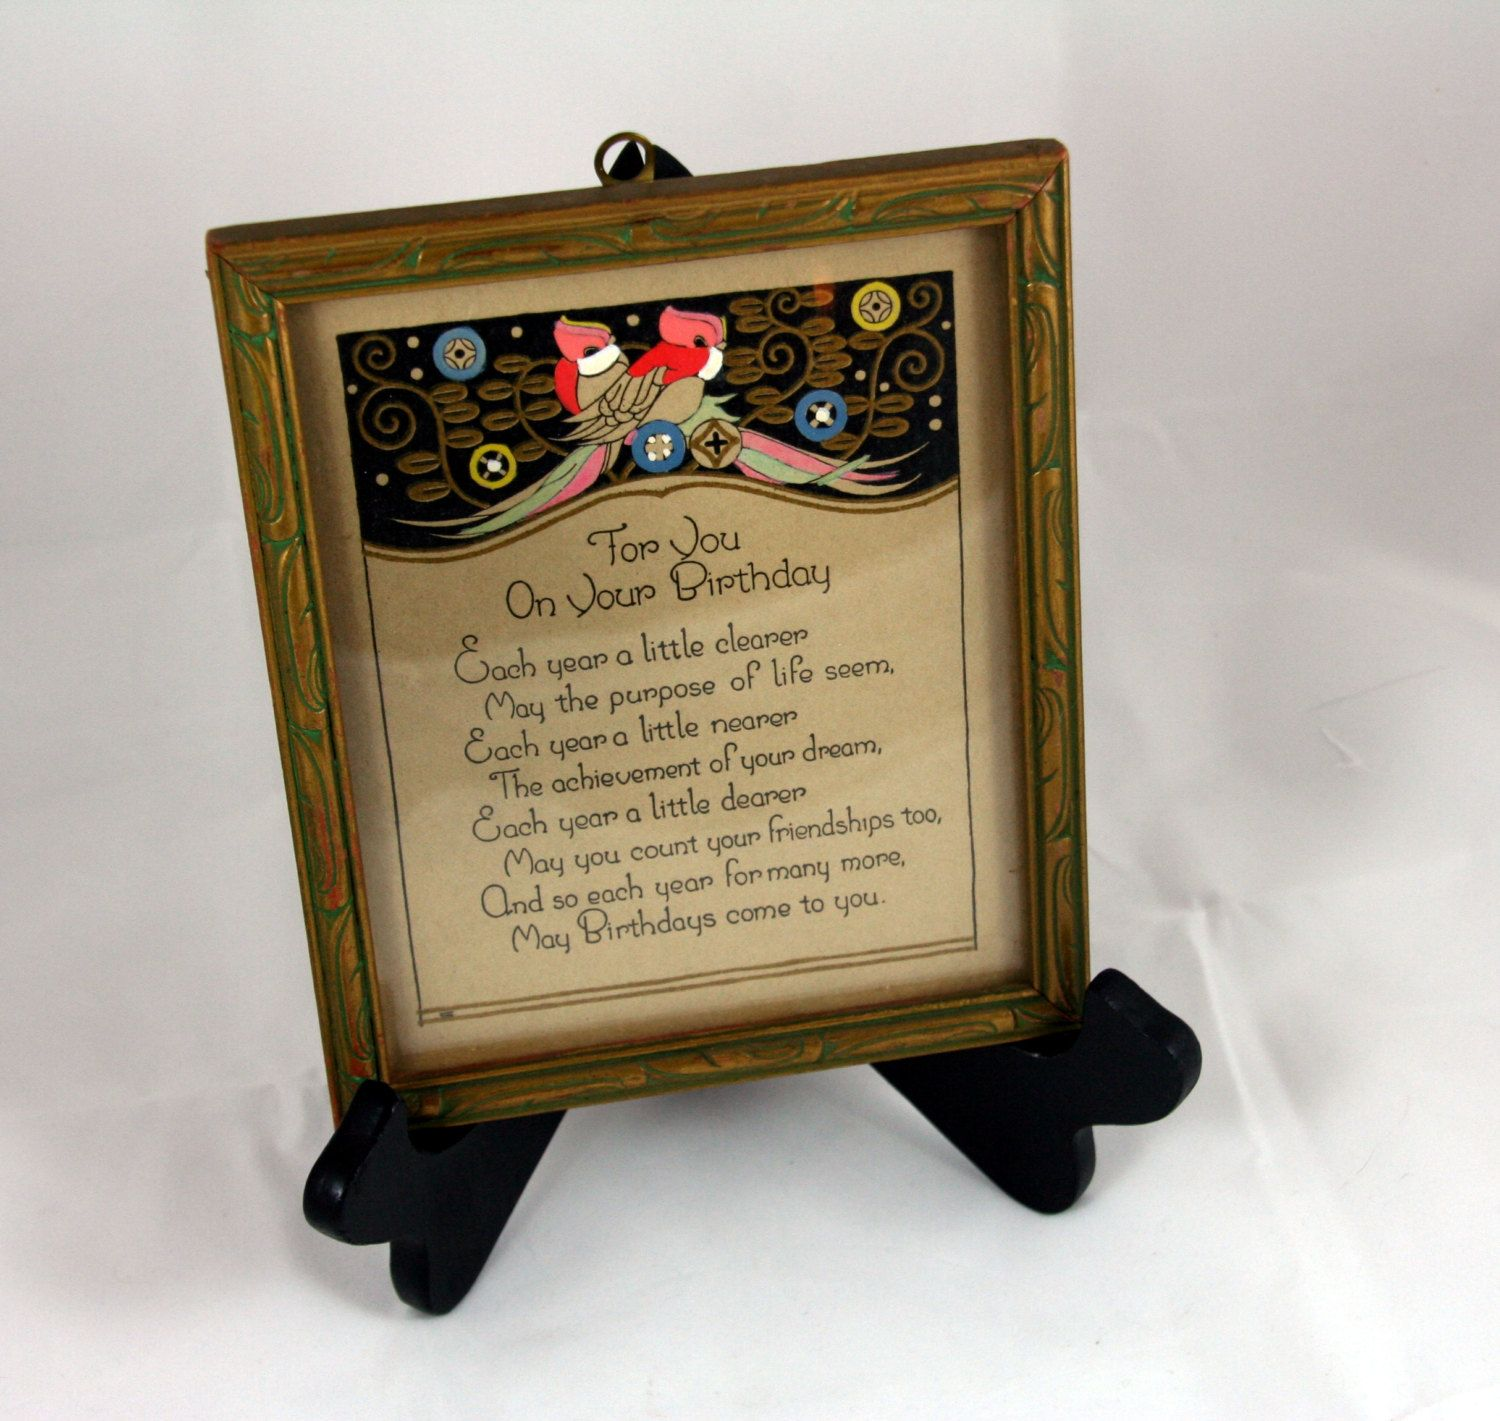 Framed poetry-antique Birthday poem-small framed art-For You on Your ...